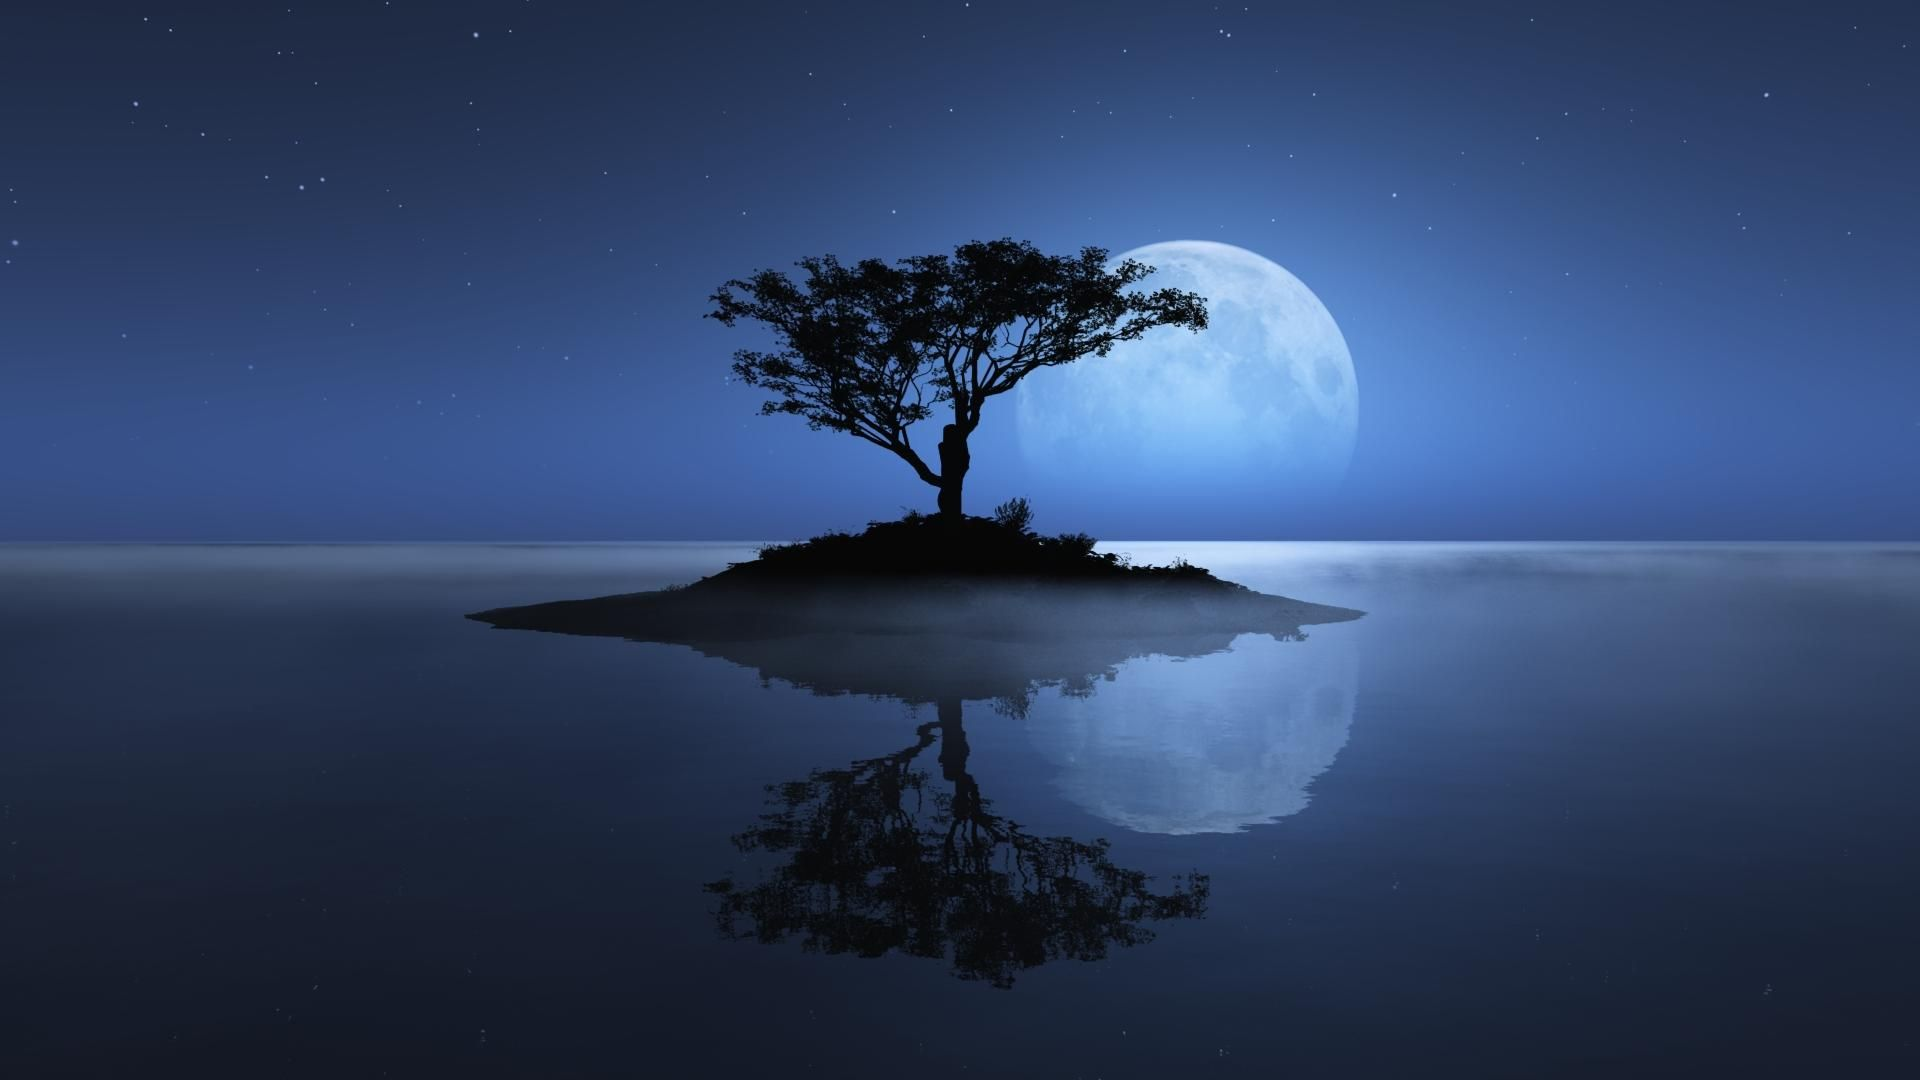 Fondos De Pantalla Beautiful Moon Reflection Pictures Beautiful Nature